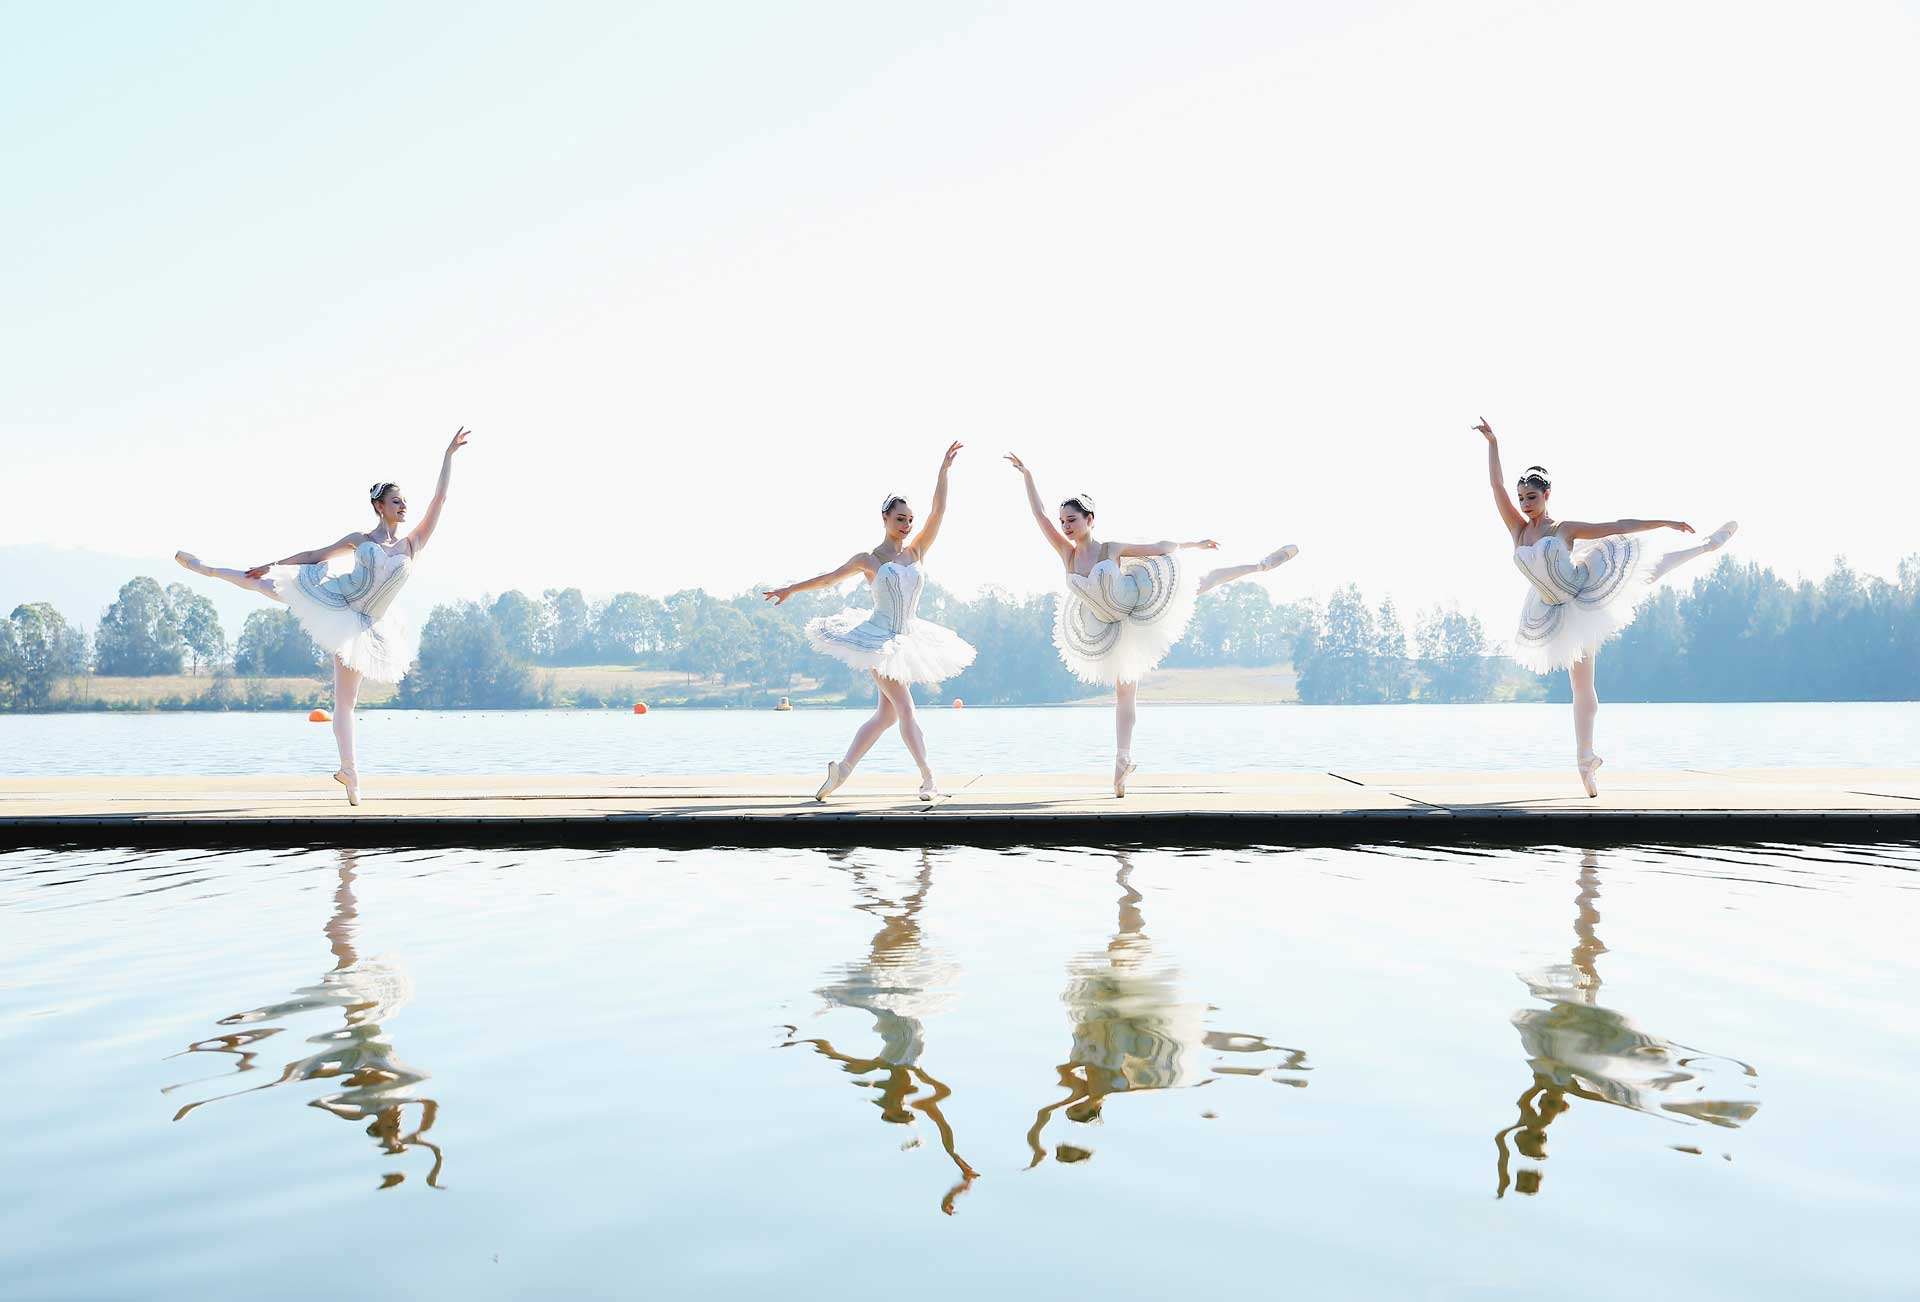 Ballet dancers perform during a media call for the Australian Ballet at Sydney International Regatta Centre on May 6, 2016 in Sydney, Australia.